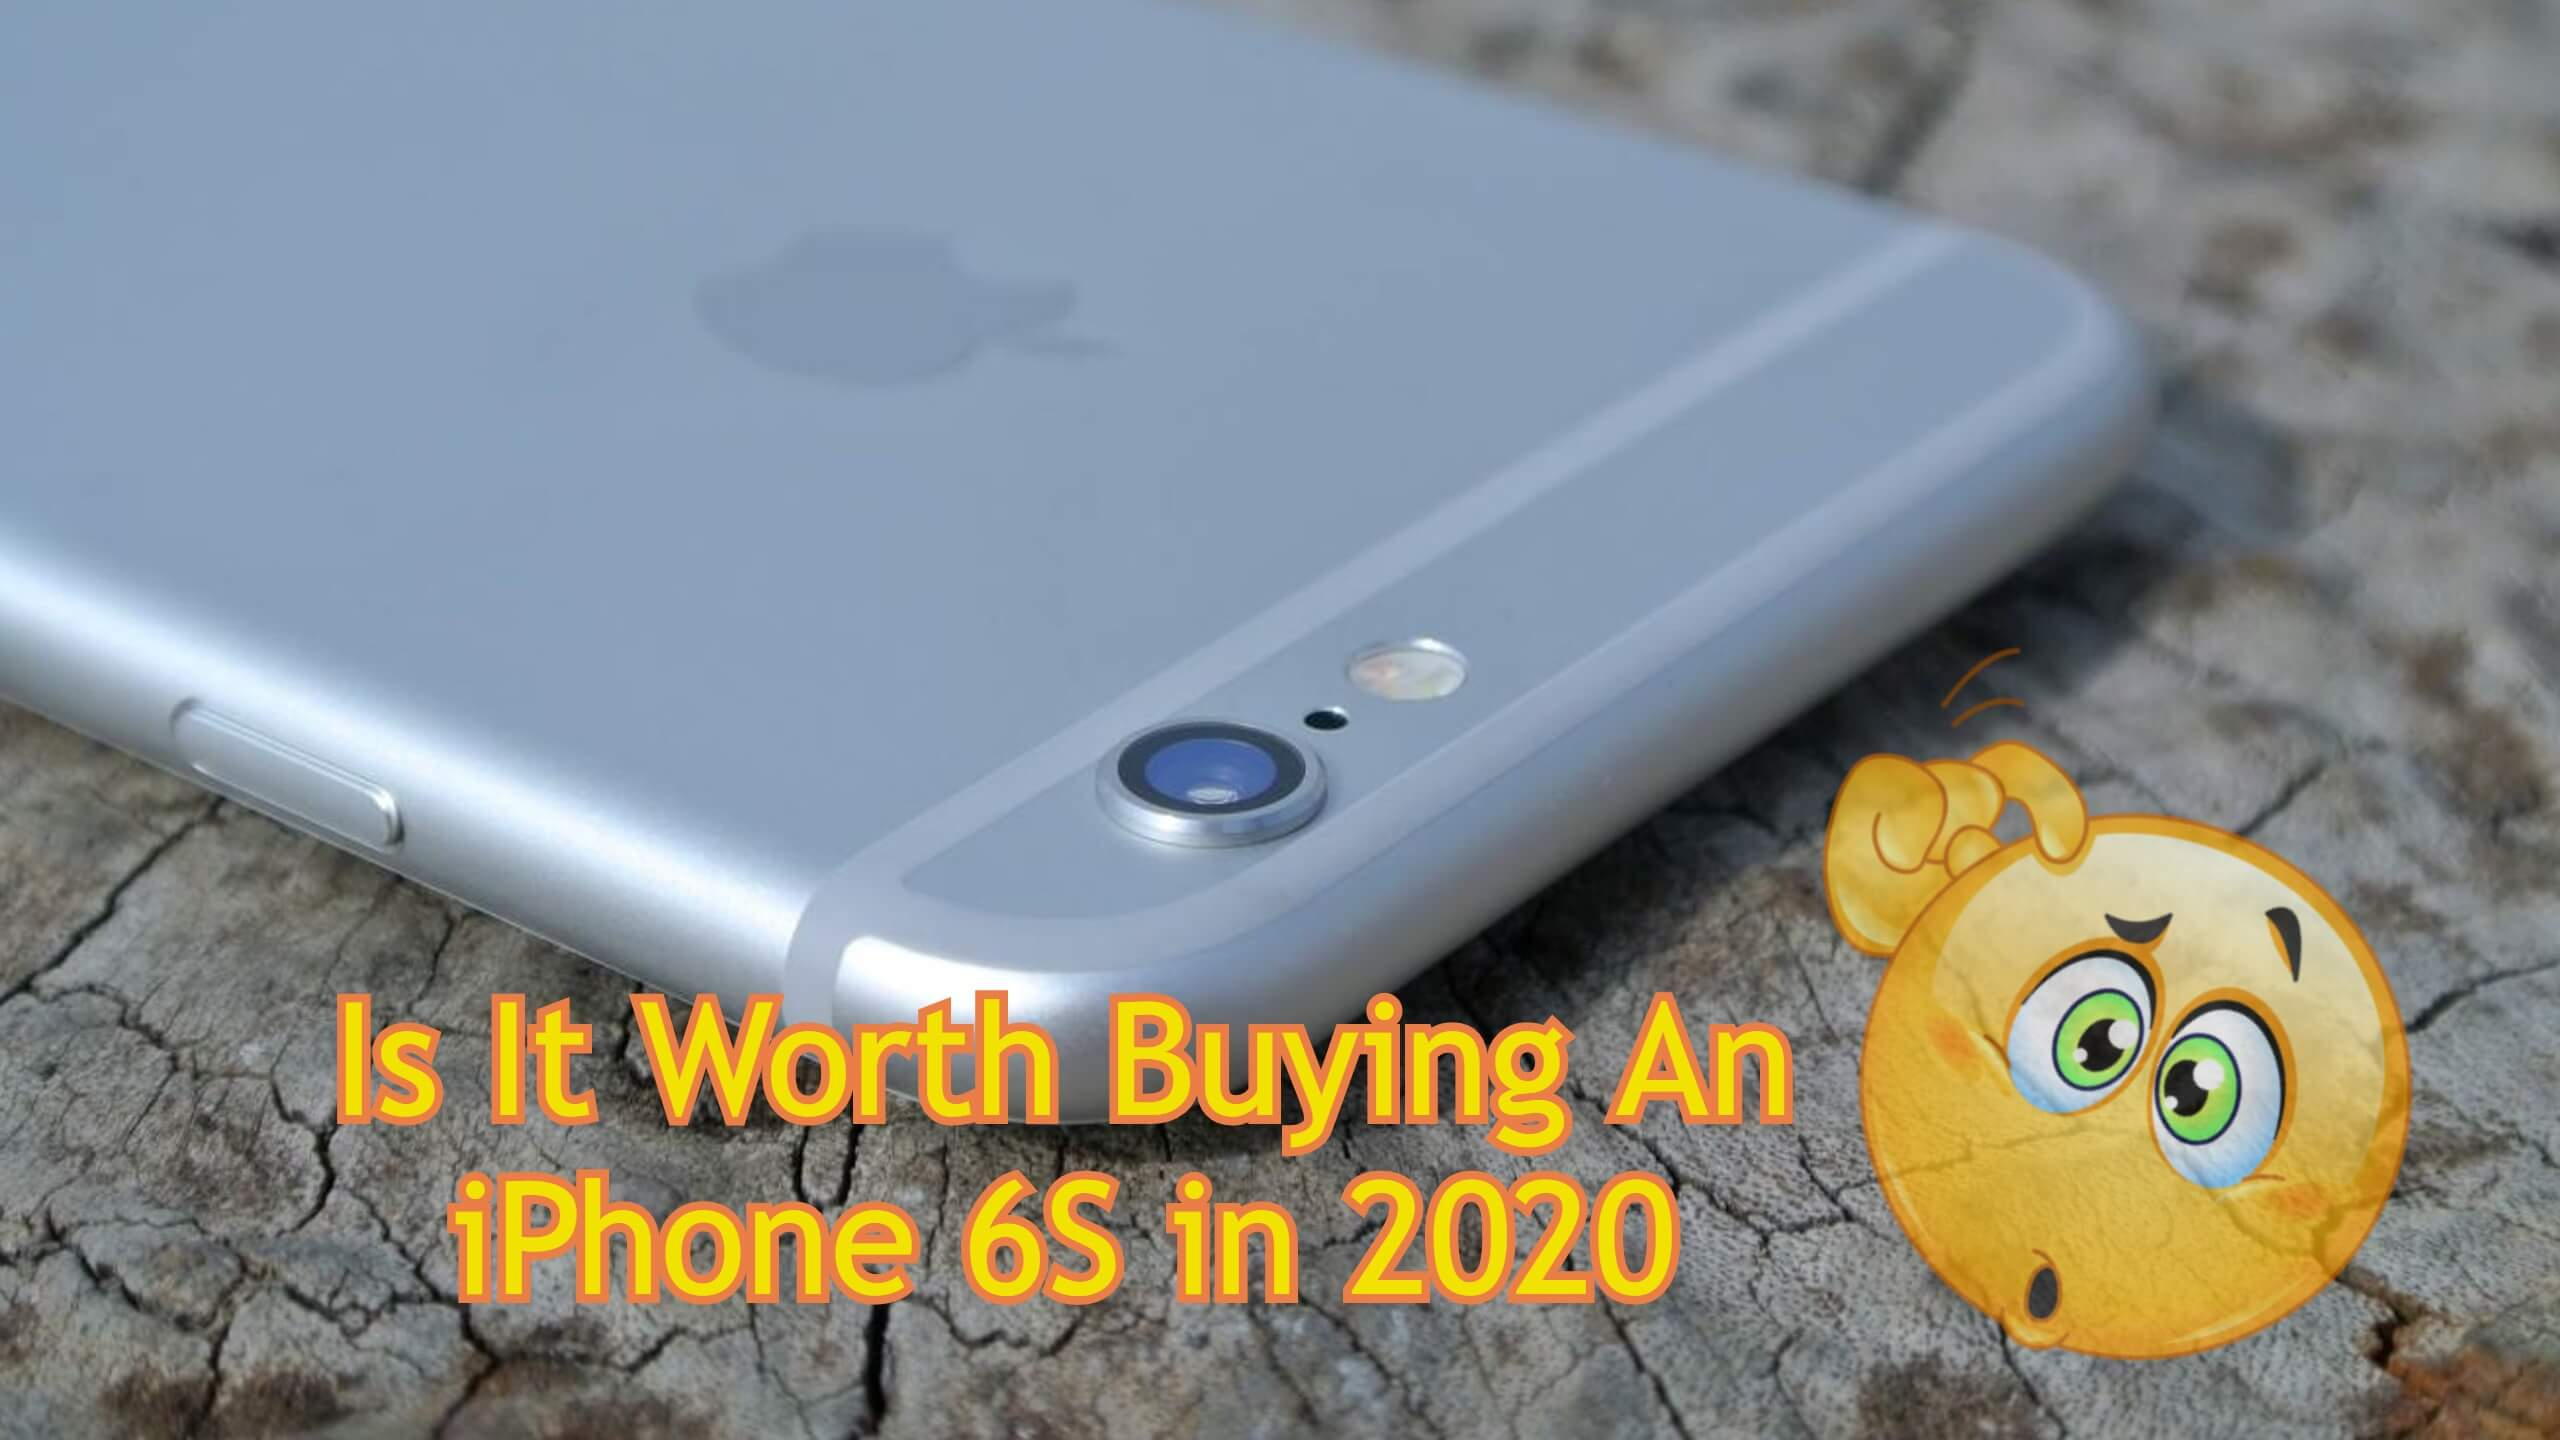 Is It Worth Buying An iPhone 6S in 2020